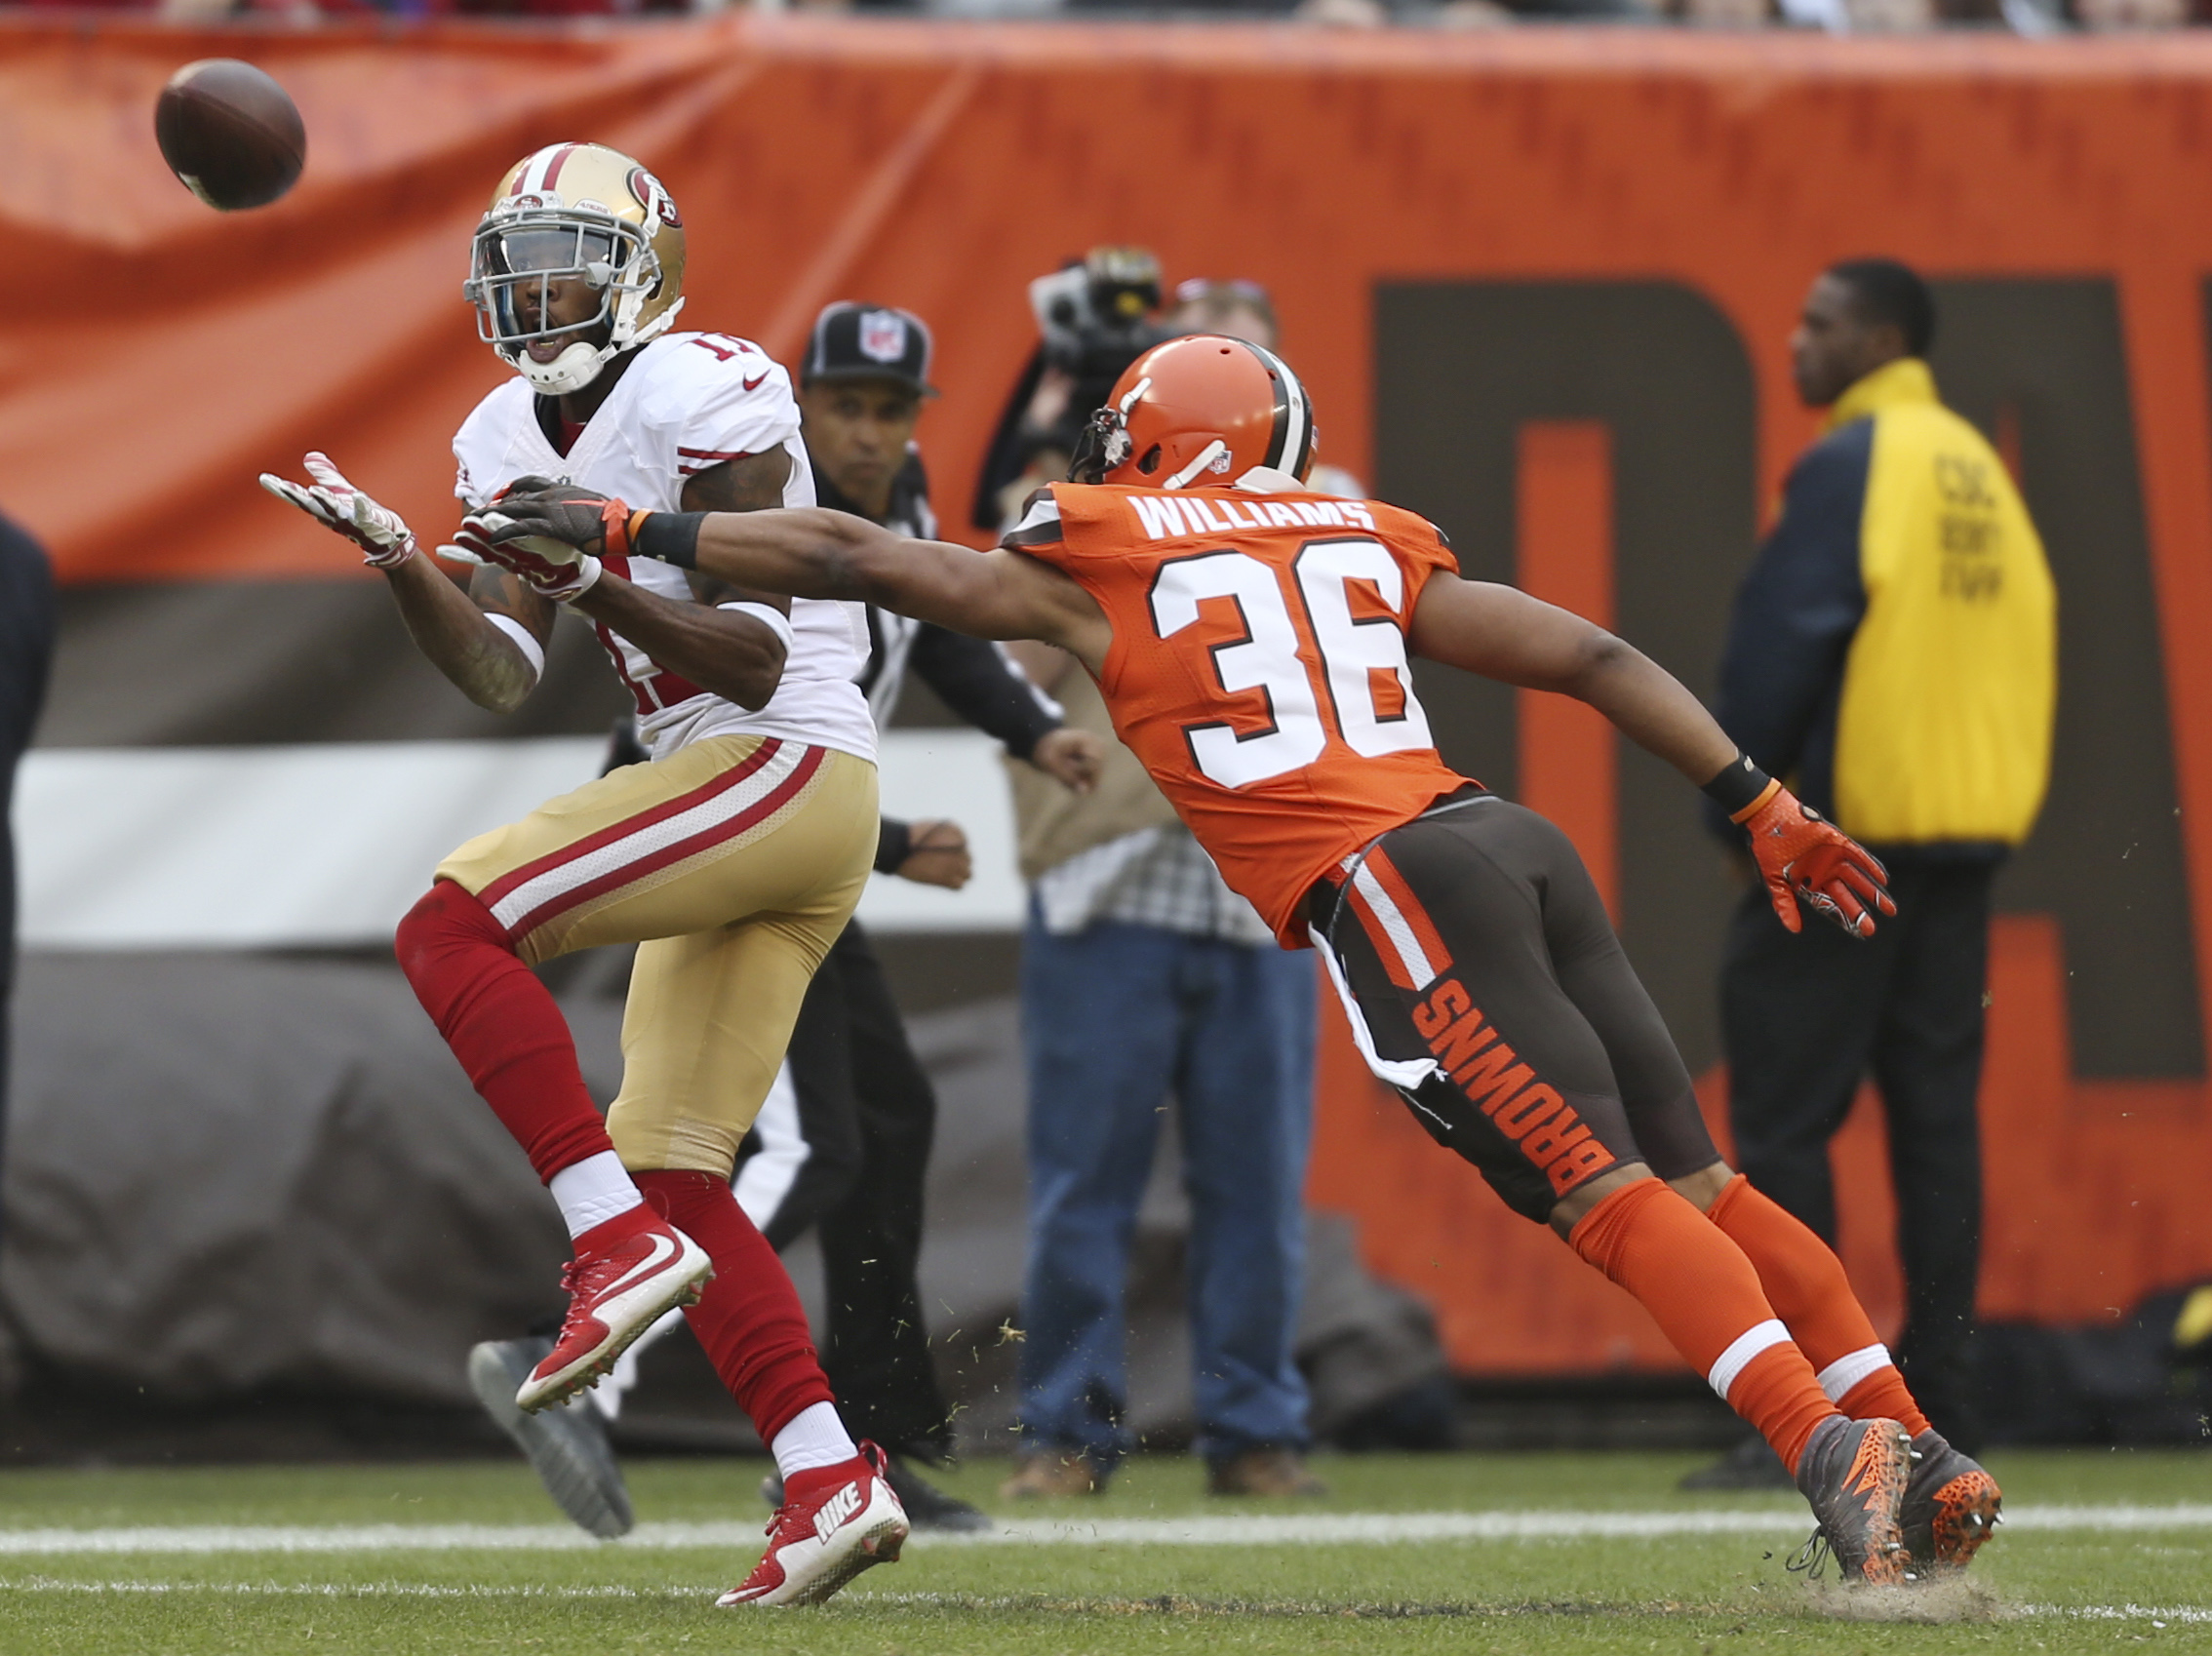 Cleveland Browns wide receiver Travis Benjamin (11) catches a pass as San Francisco 49ers cornerback Dontae Johnson (36) defends during the second half of an NFL football game, Sunday, Dec. 13, 2015, in Cleveland. There was a penalty on the play. (AP Phot